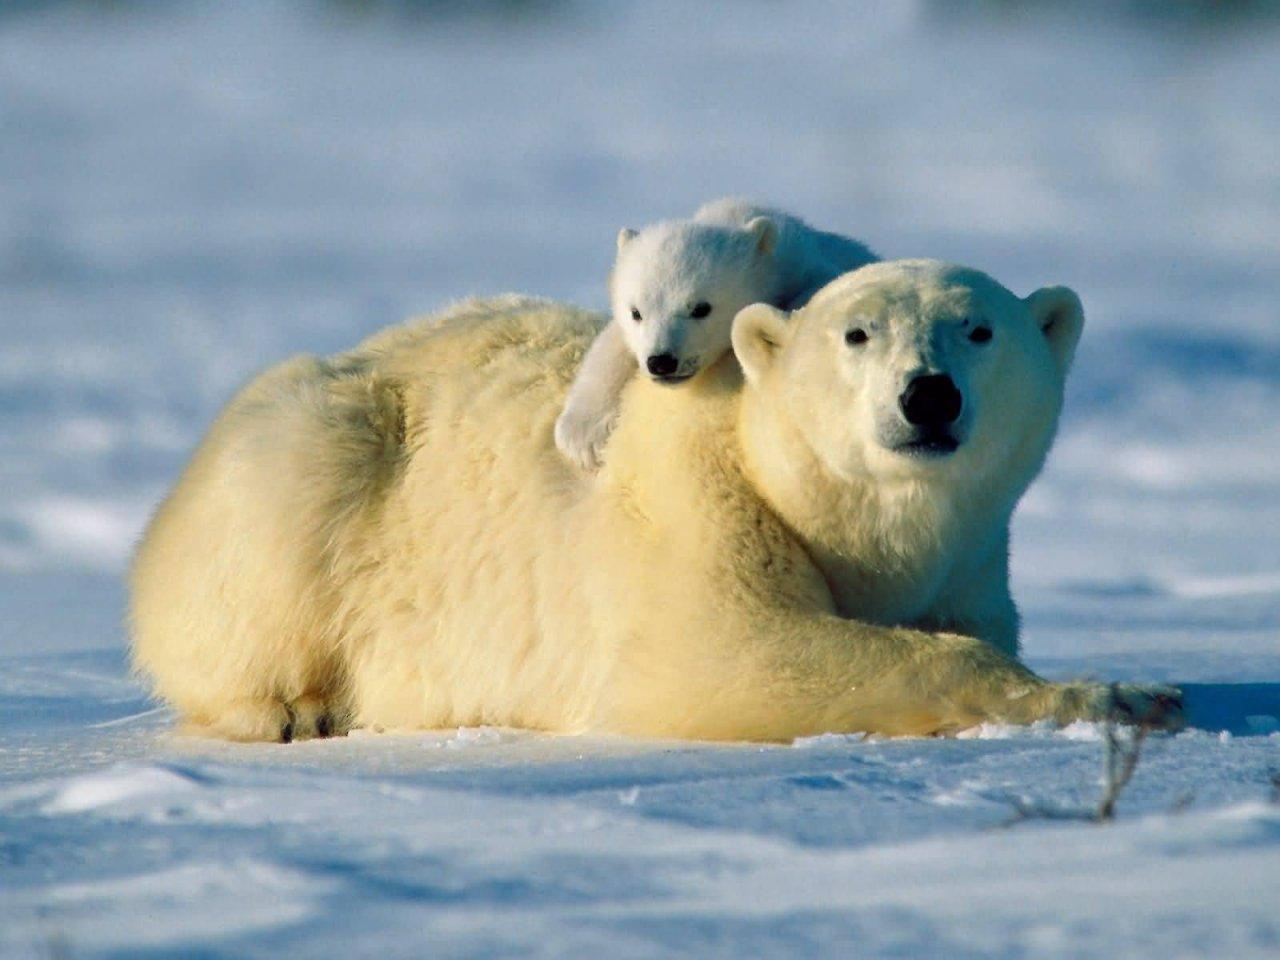 Polar Bears Gt Facts Eat Baby Population Endangered Global Warming Extinction